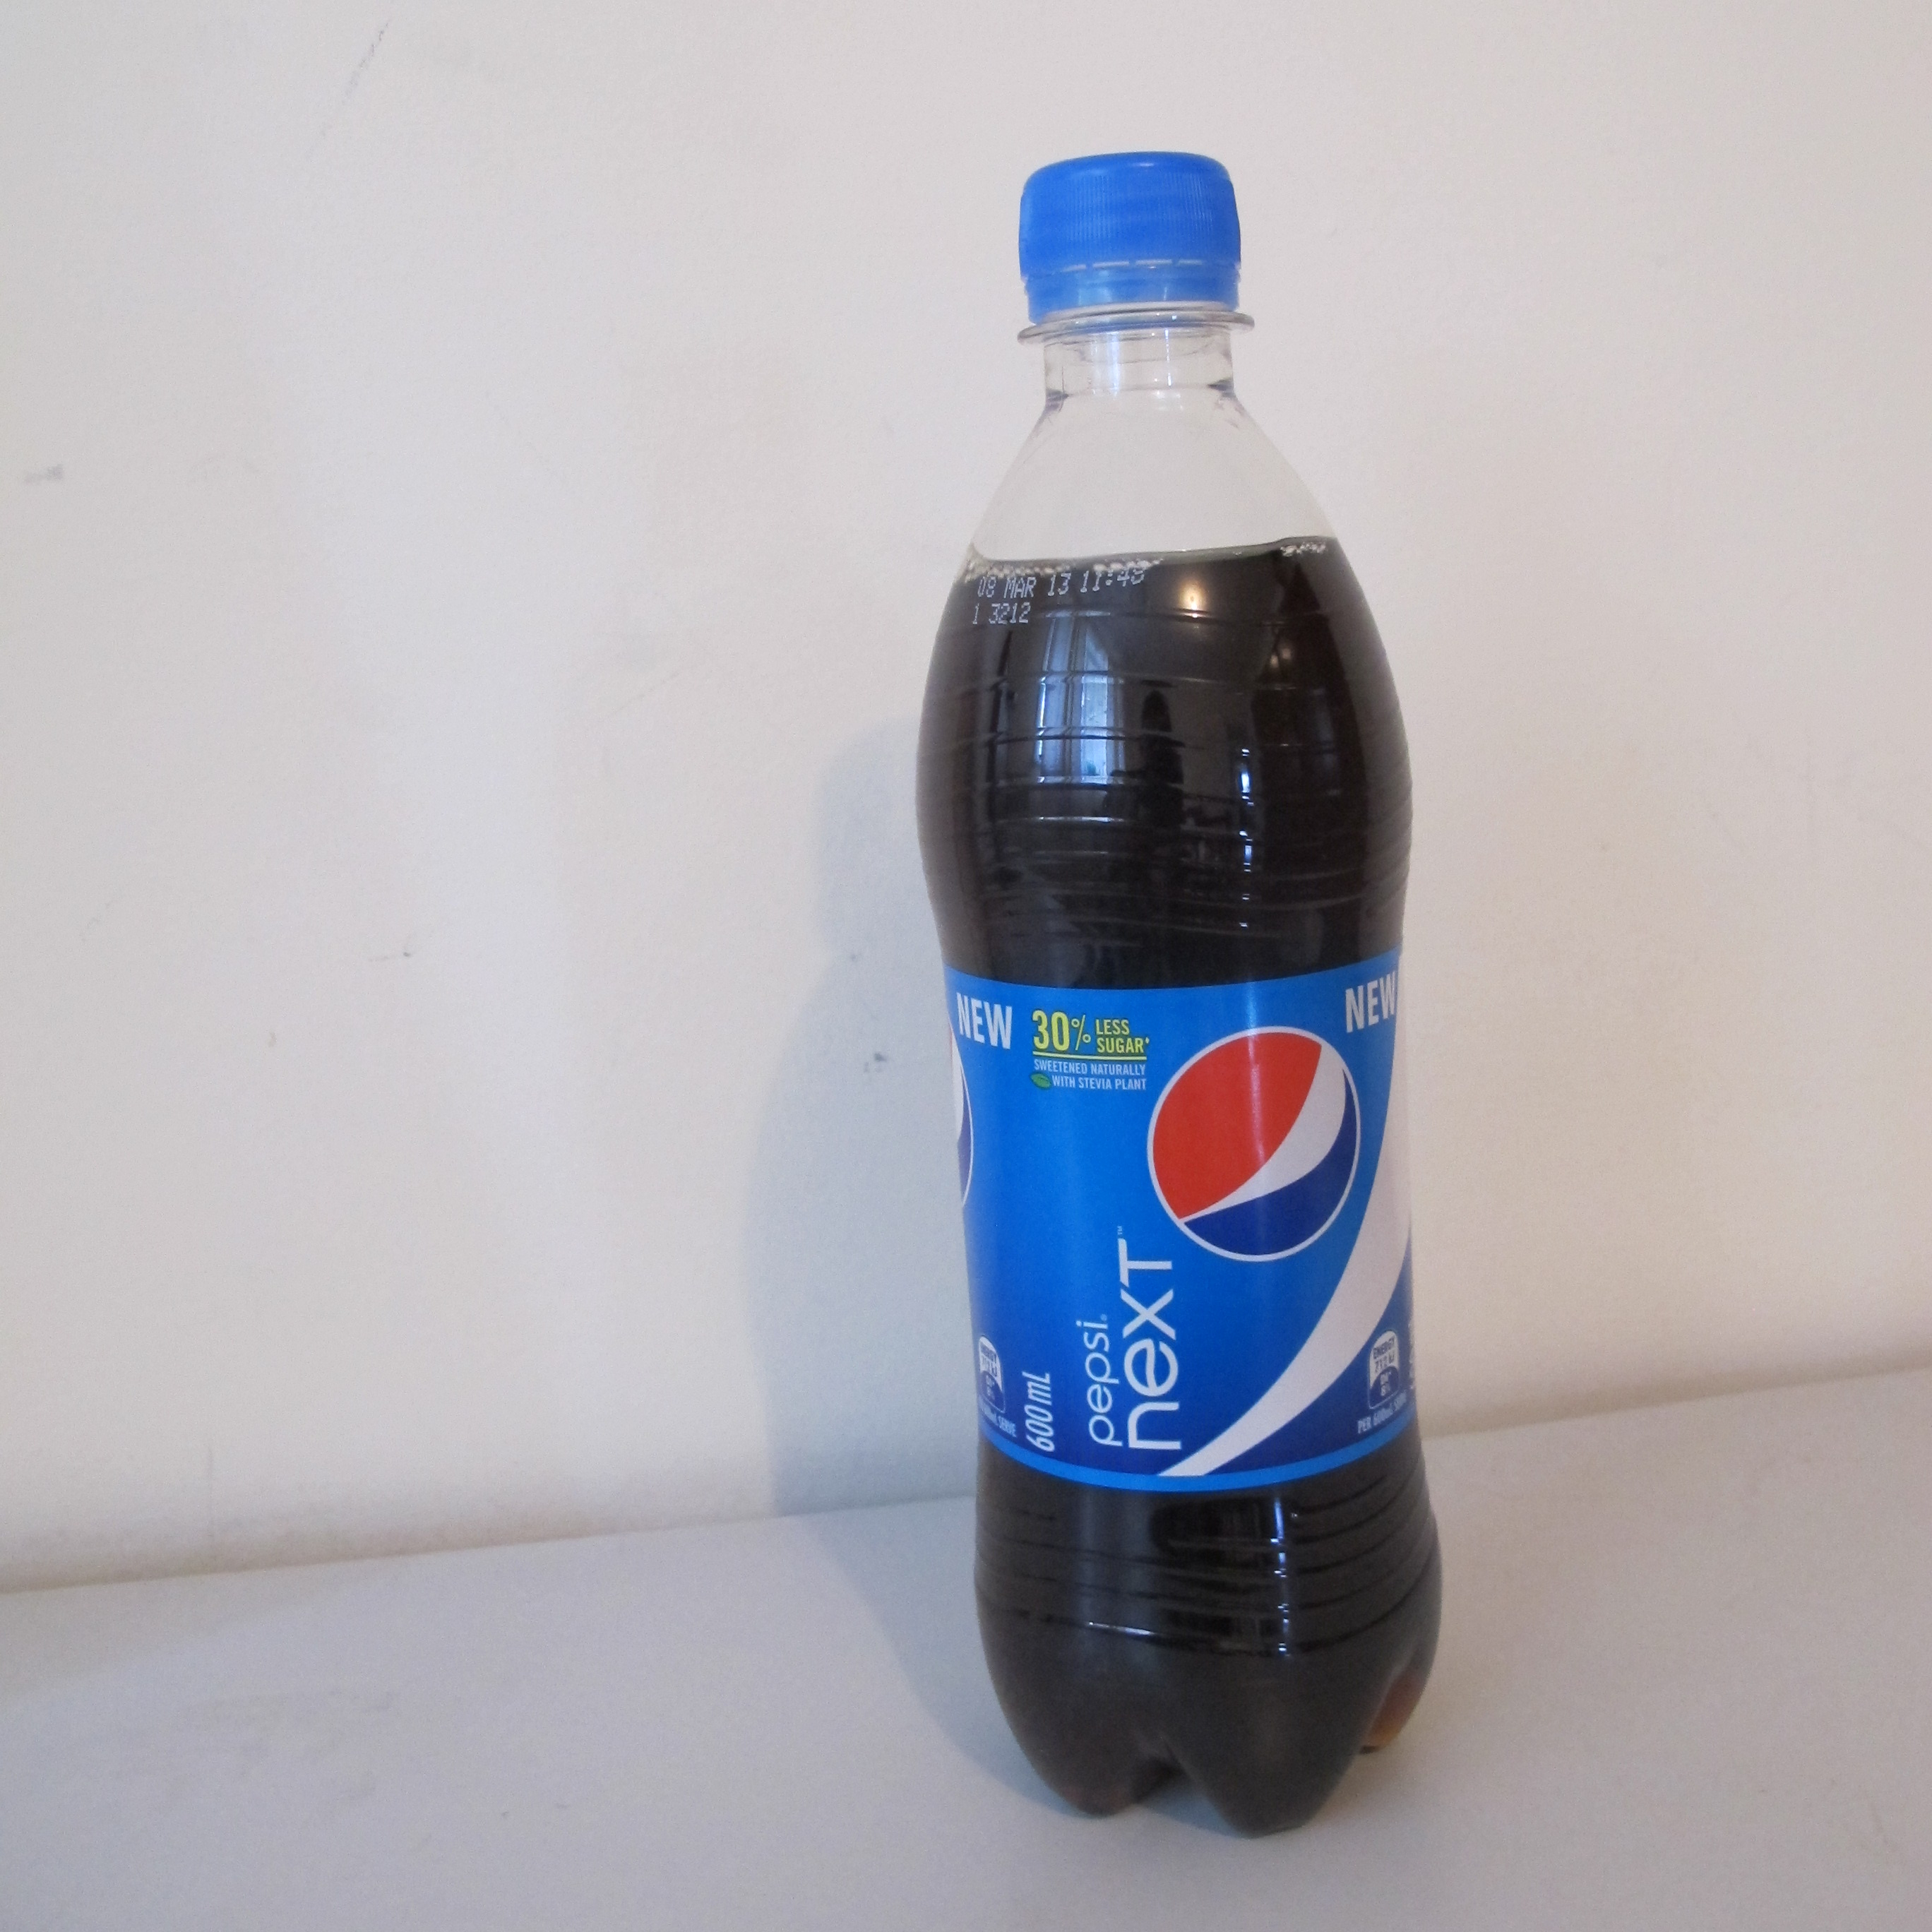 pepsi next Pepsi next is a combination of high fructose corn syrup and three separate artificial sweeteners - yet to be revealed unhealthy diet soda for those who loathe water.